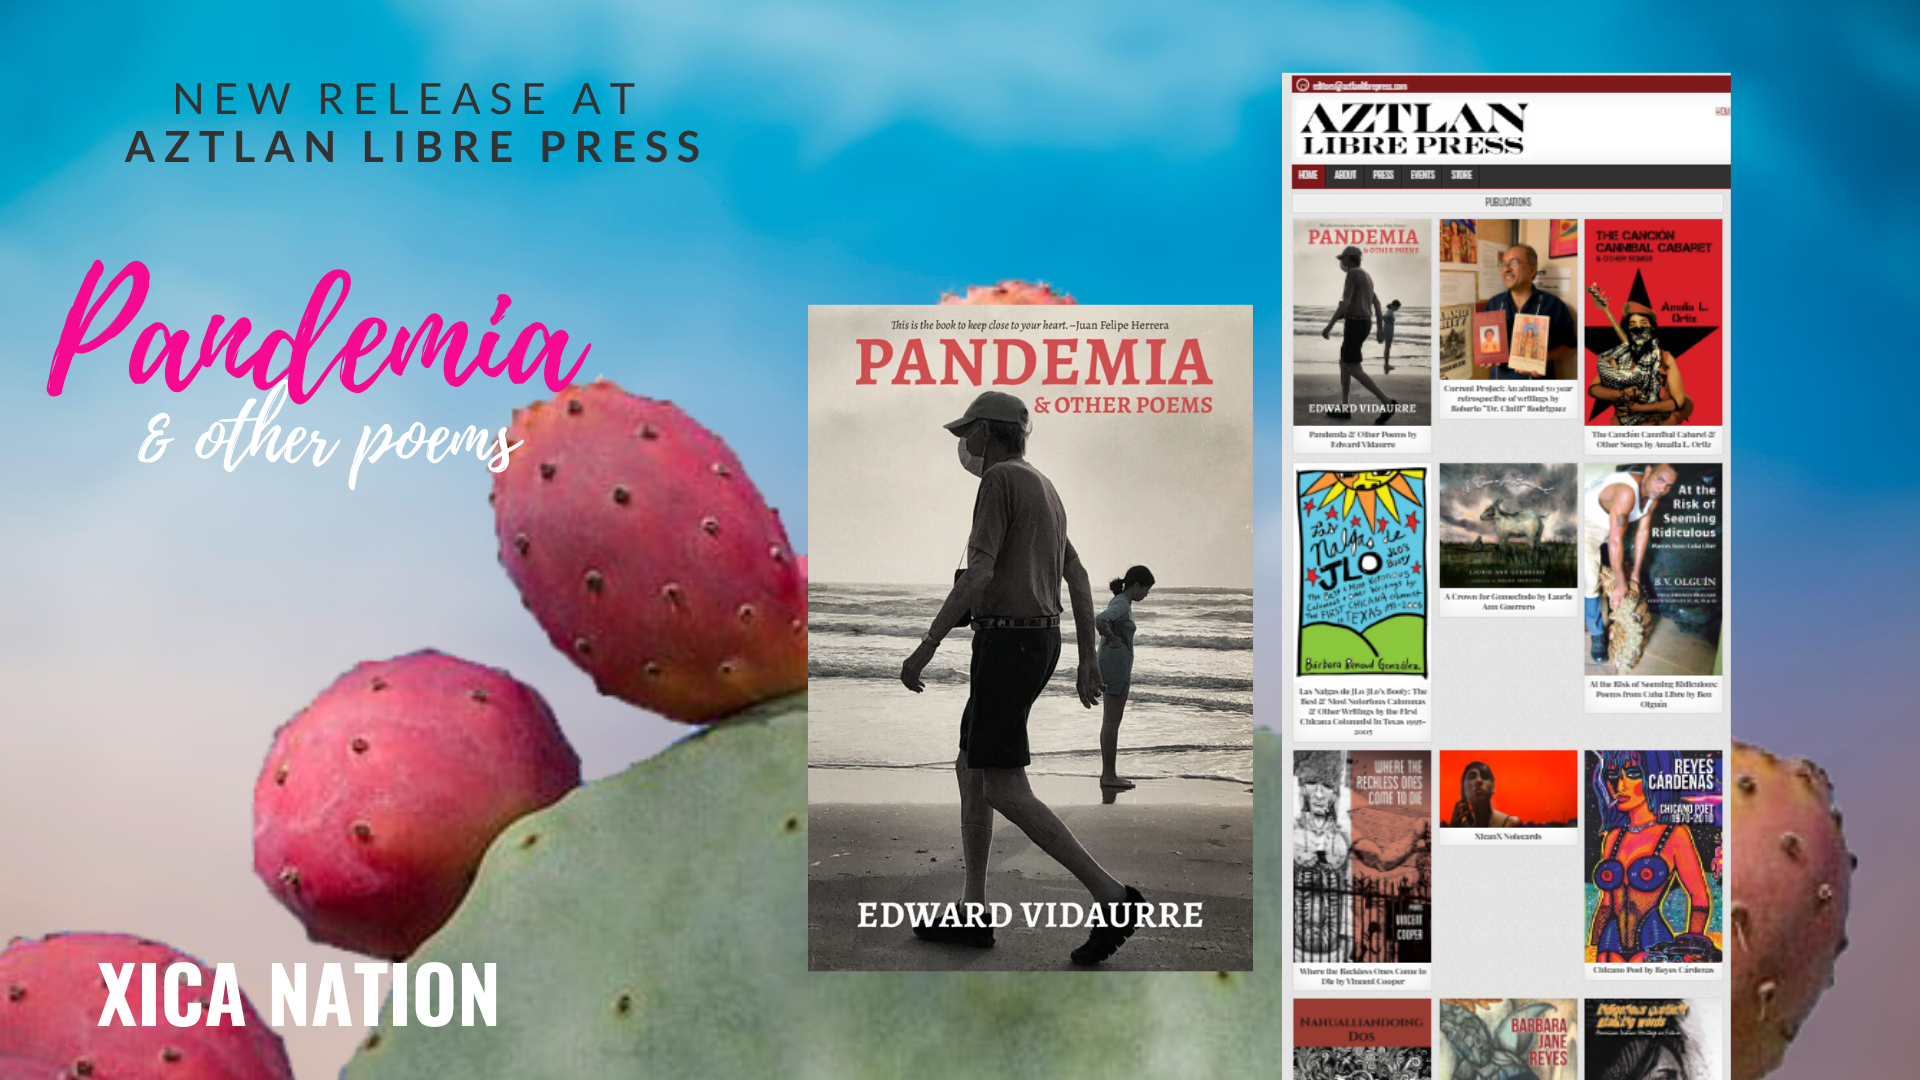 New release at Aztlan Libre Press: Pandemia & Other Poems